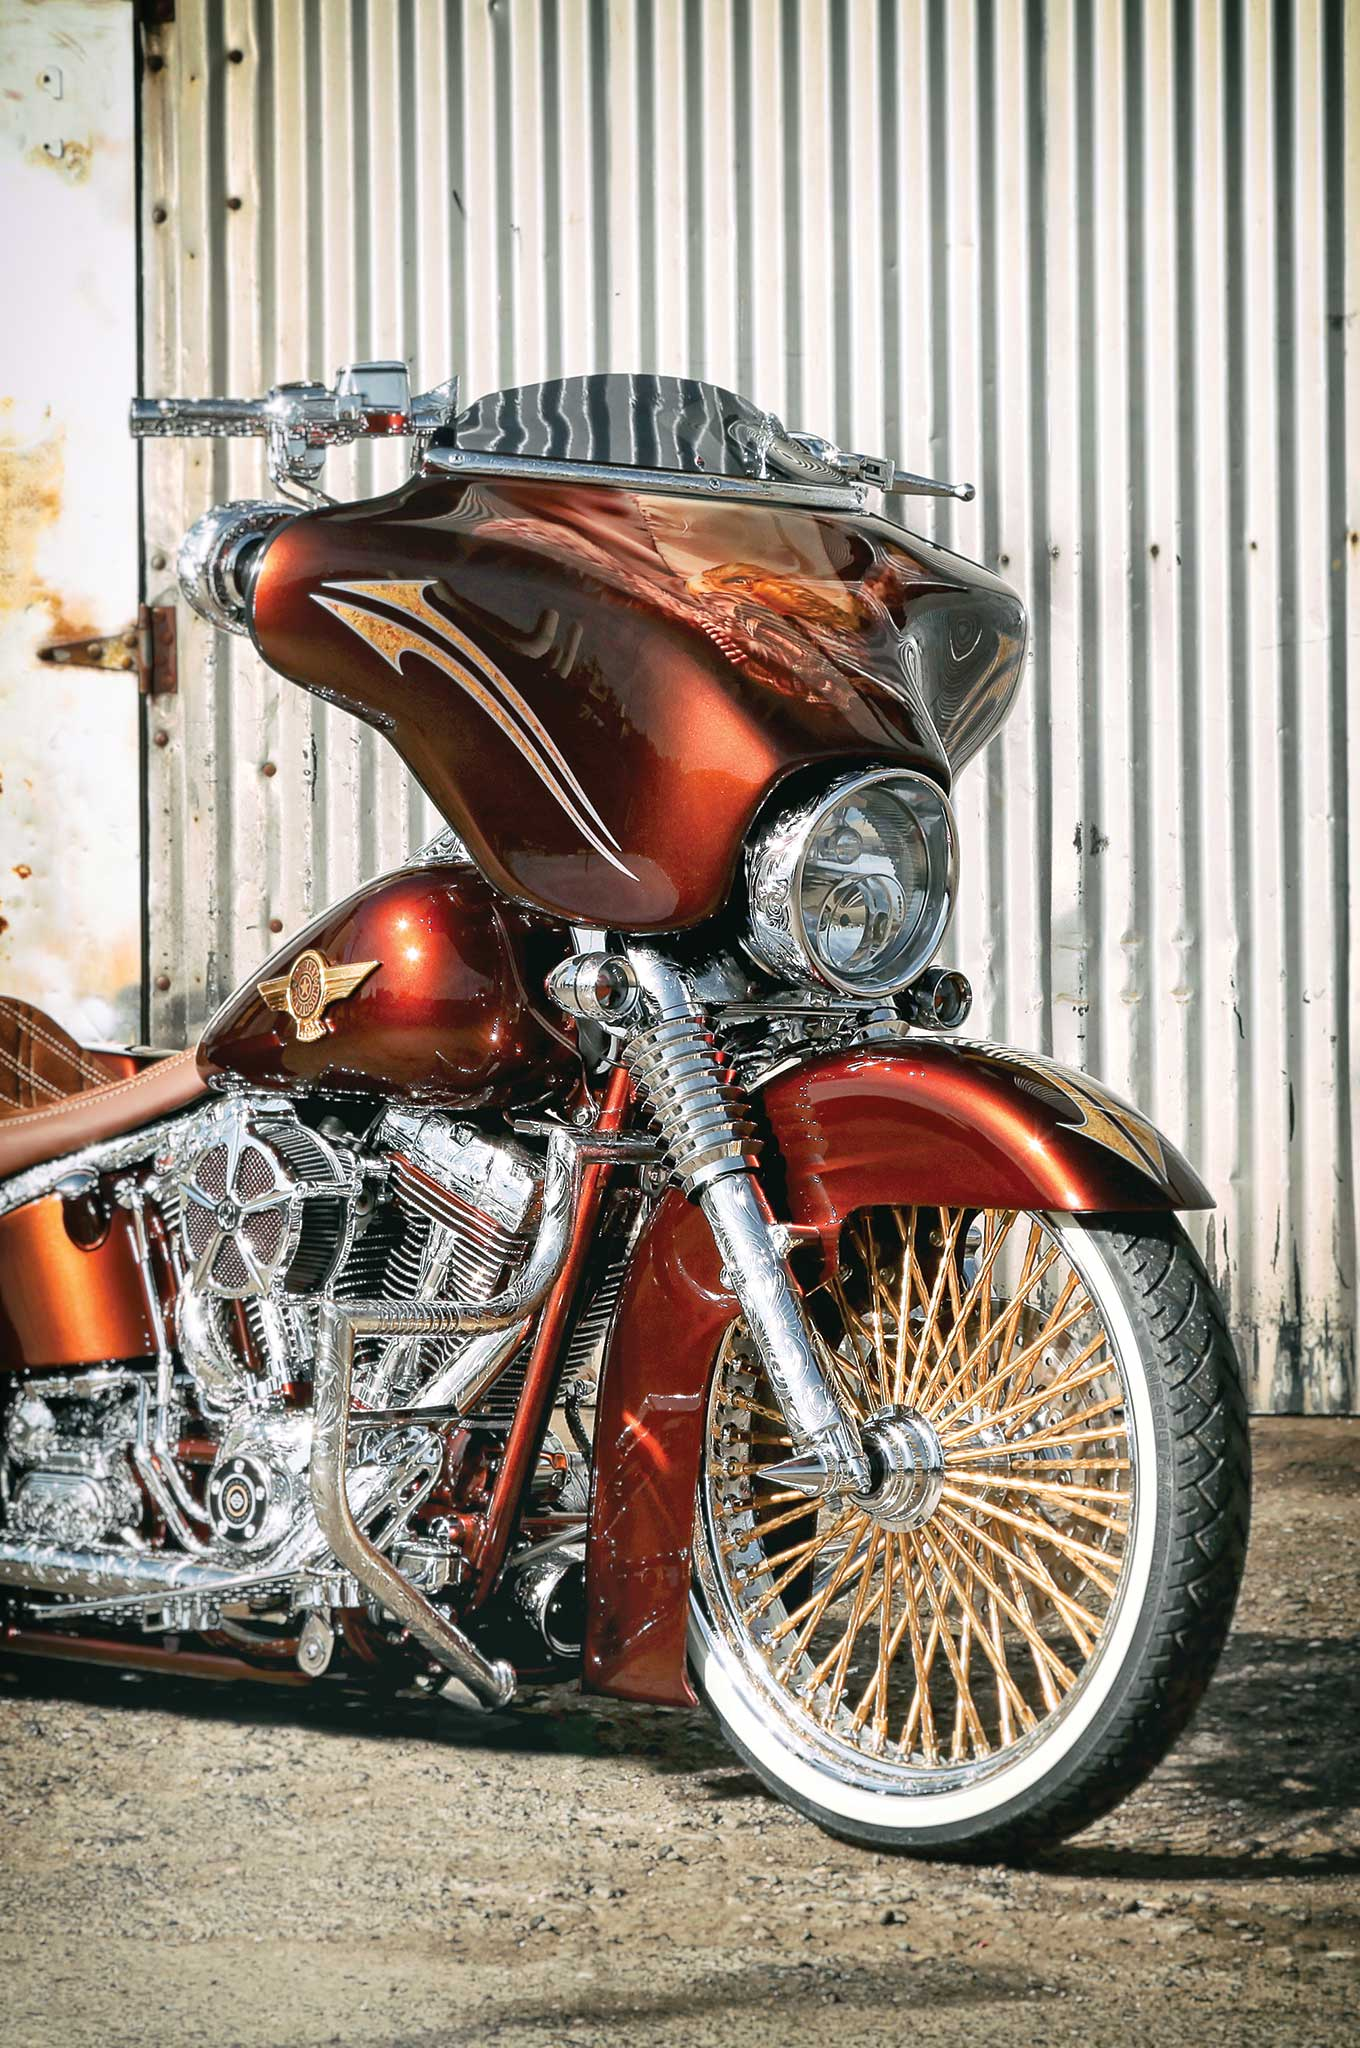 Lowrider Rims And Tires >> 2005 Harley-Davidson Fat Boy - Heritage With Style - Lowrider